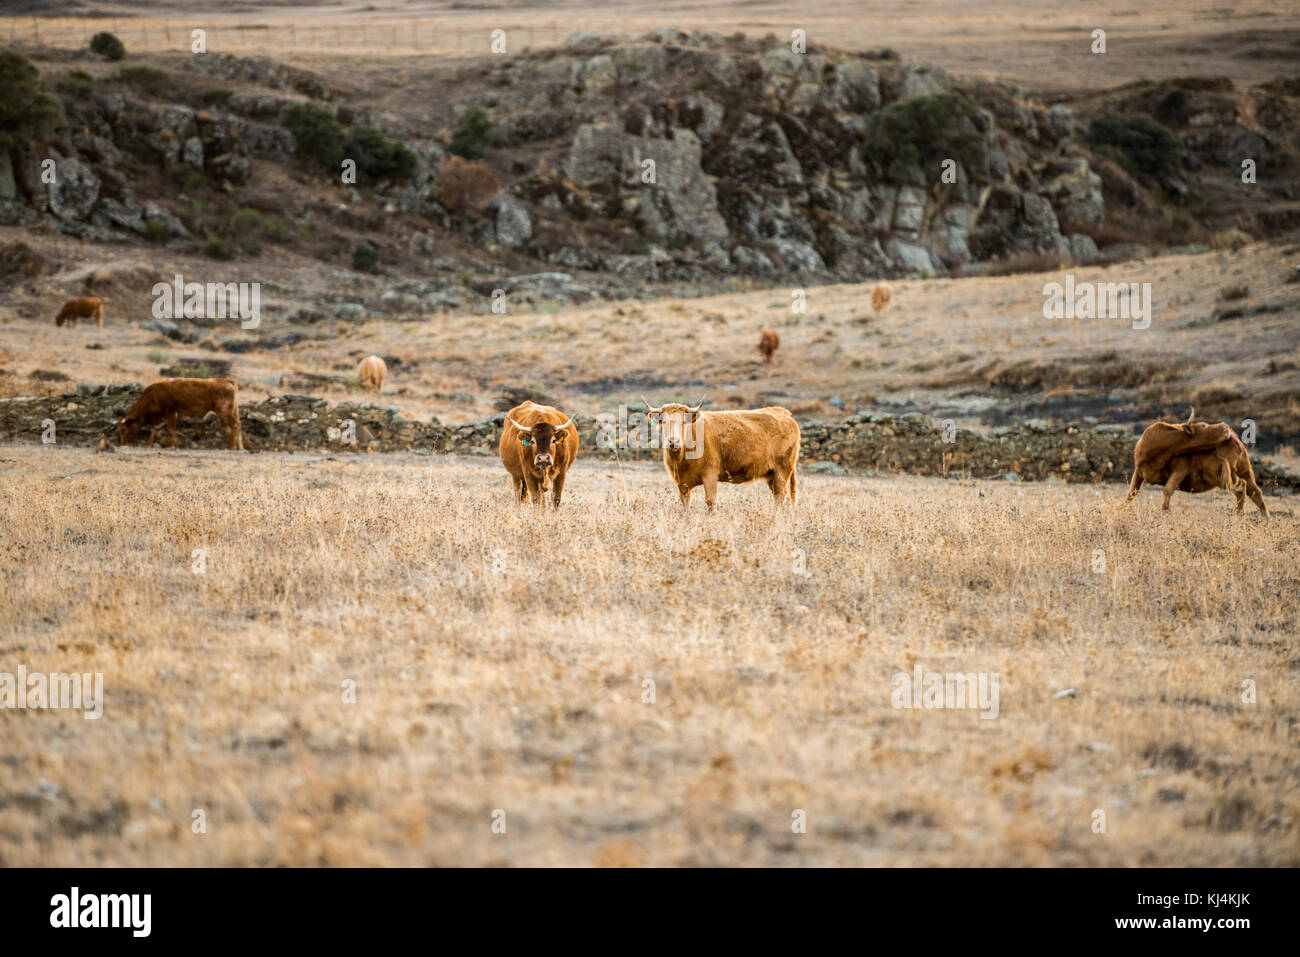 A group of four cows graze in a desert landscape of the steppe during a long period of drought. Cáceres, Extremadura, - Stock Image